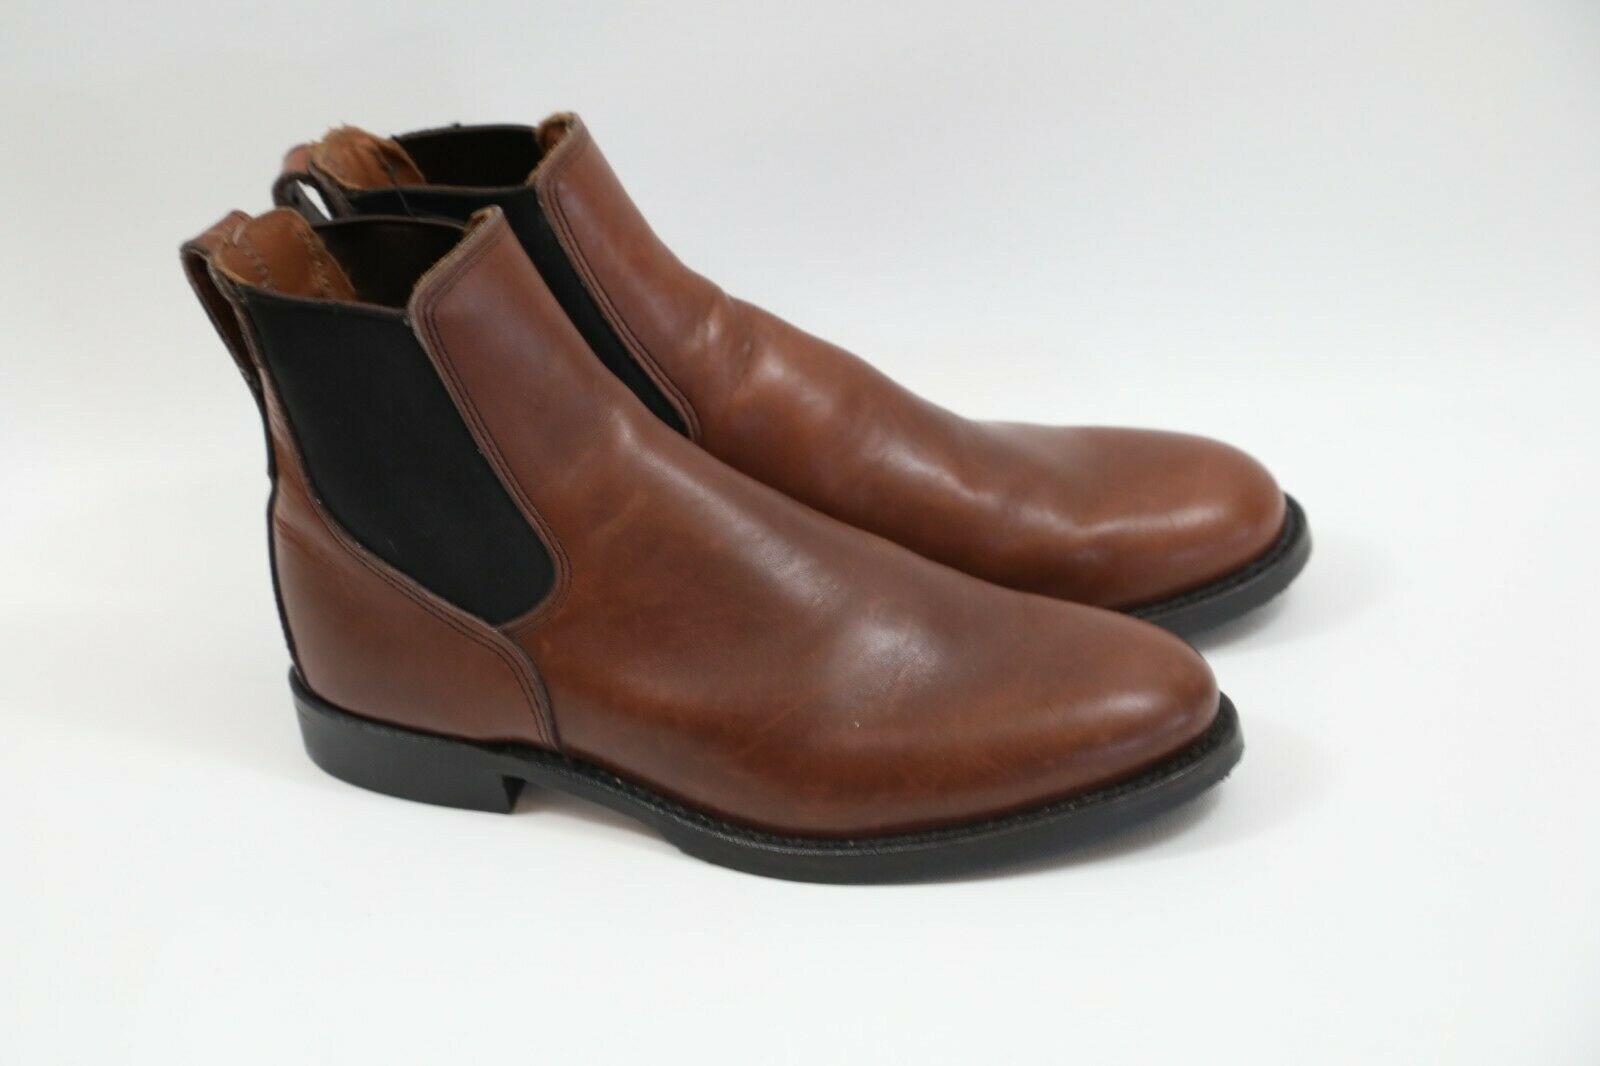 Red Wing 9078 Congress Chelsea Boots Size 8.5 D